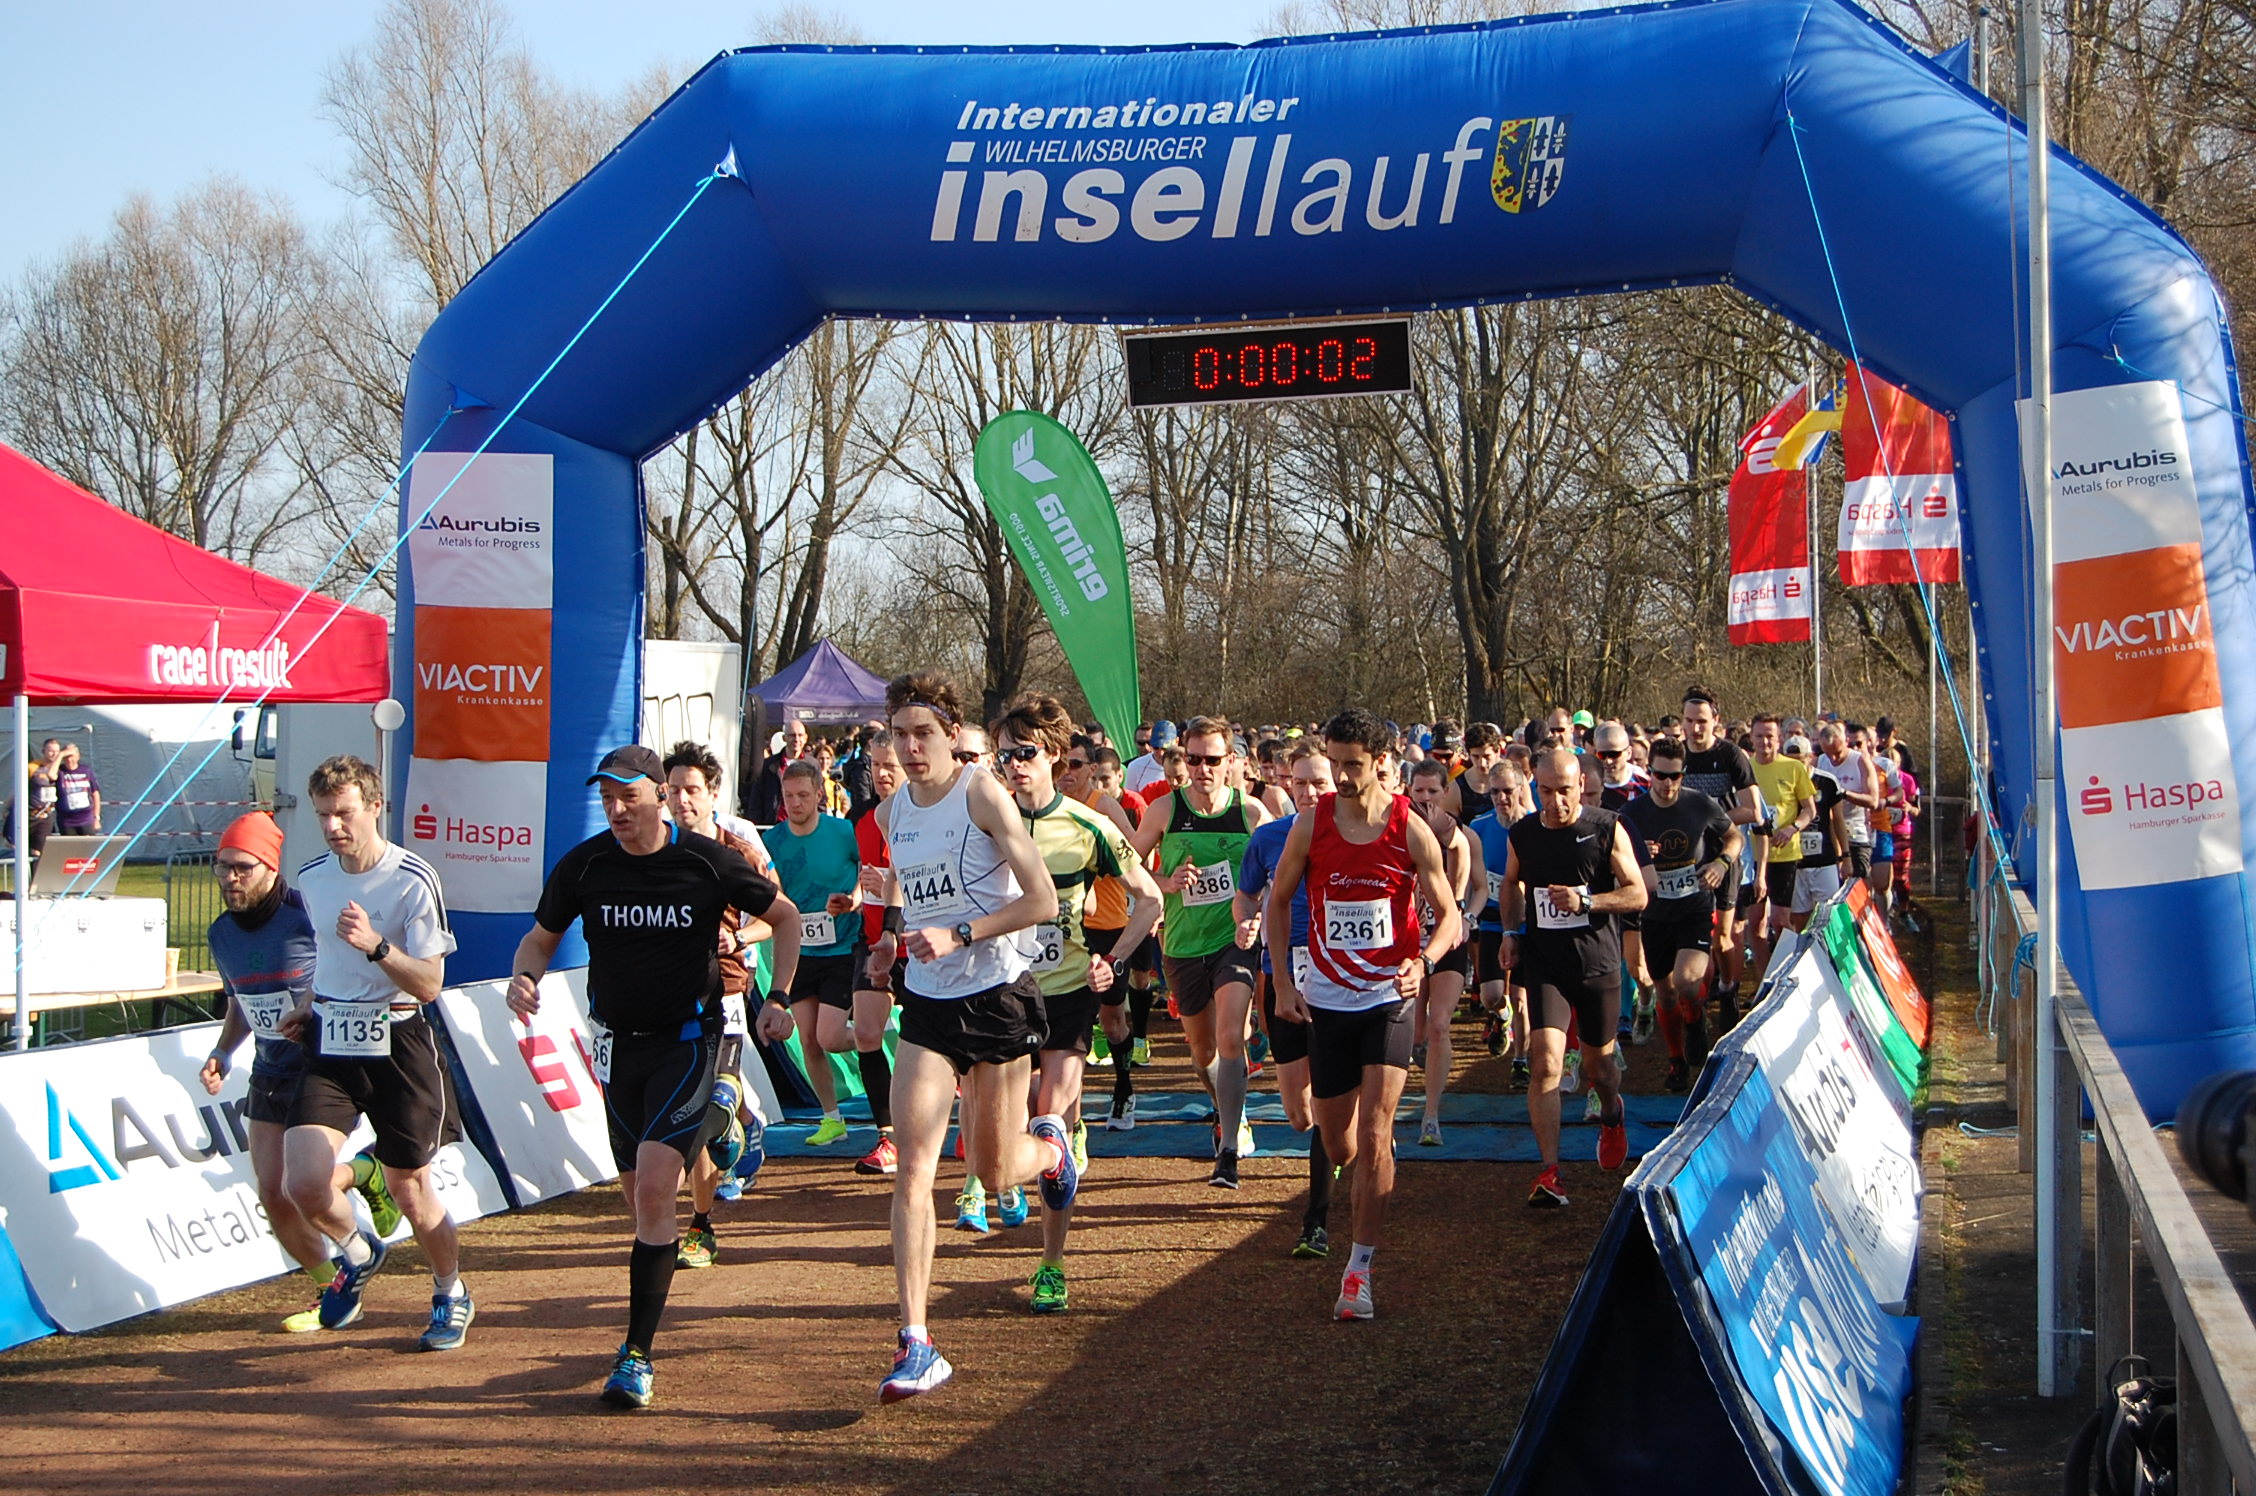 001-Start-LunaCenter-Elbinsel-Halbmarathon.jpg